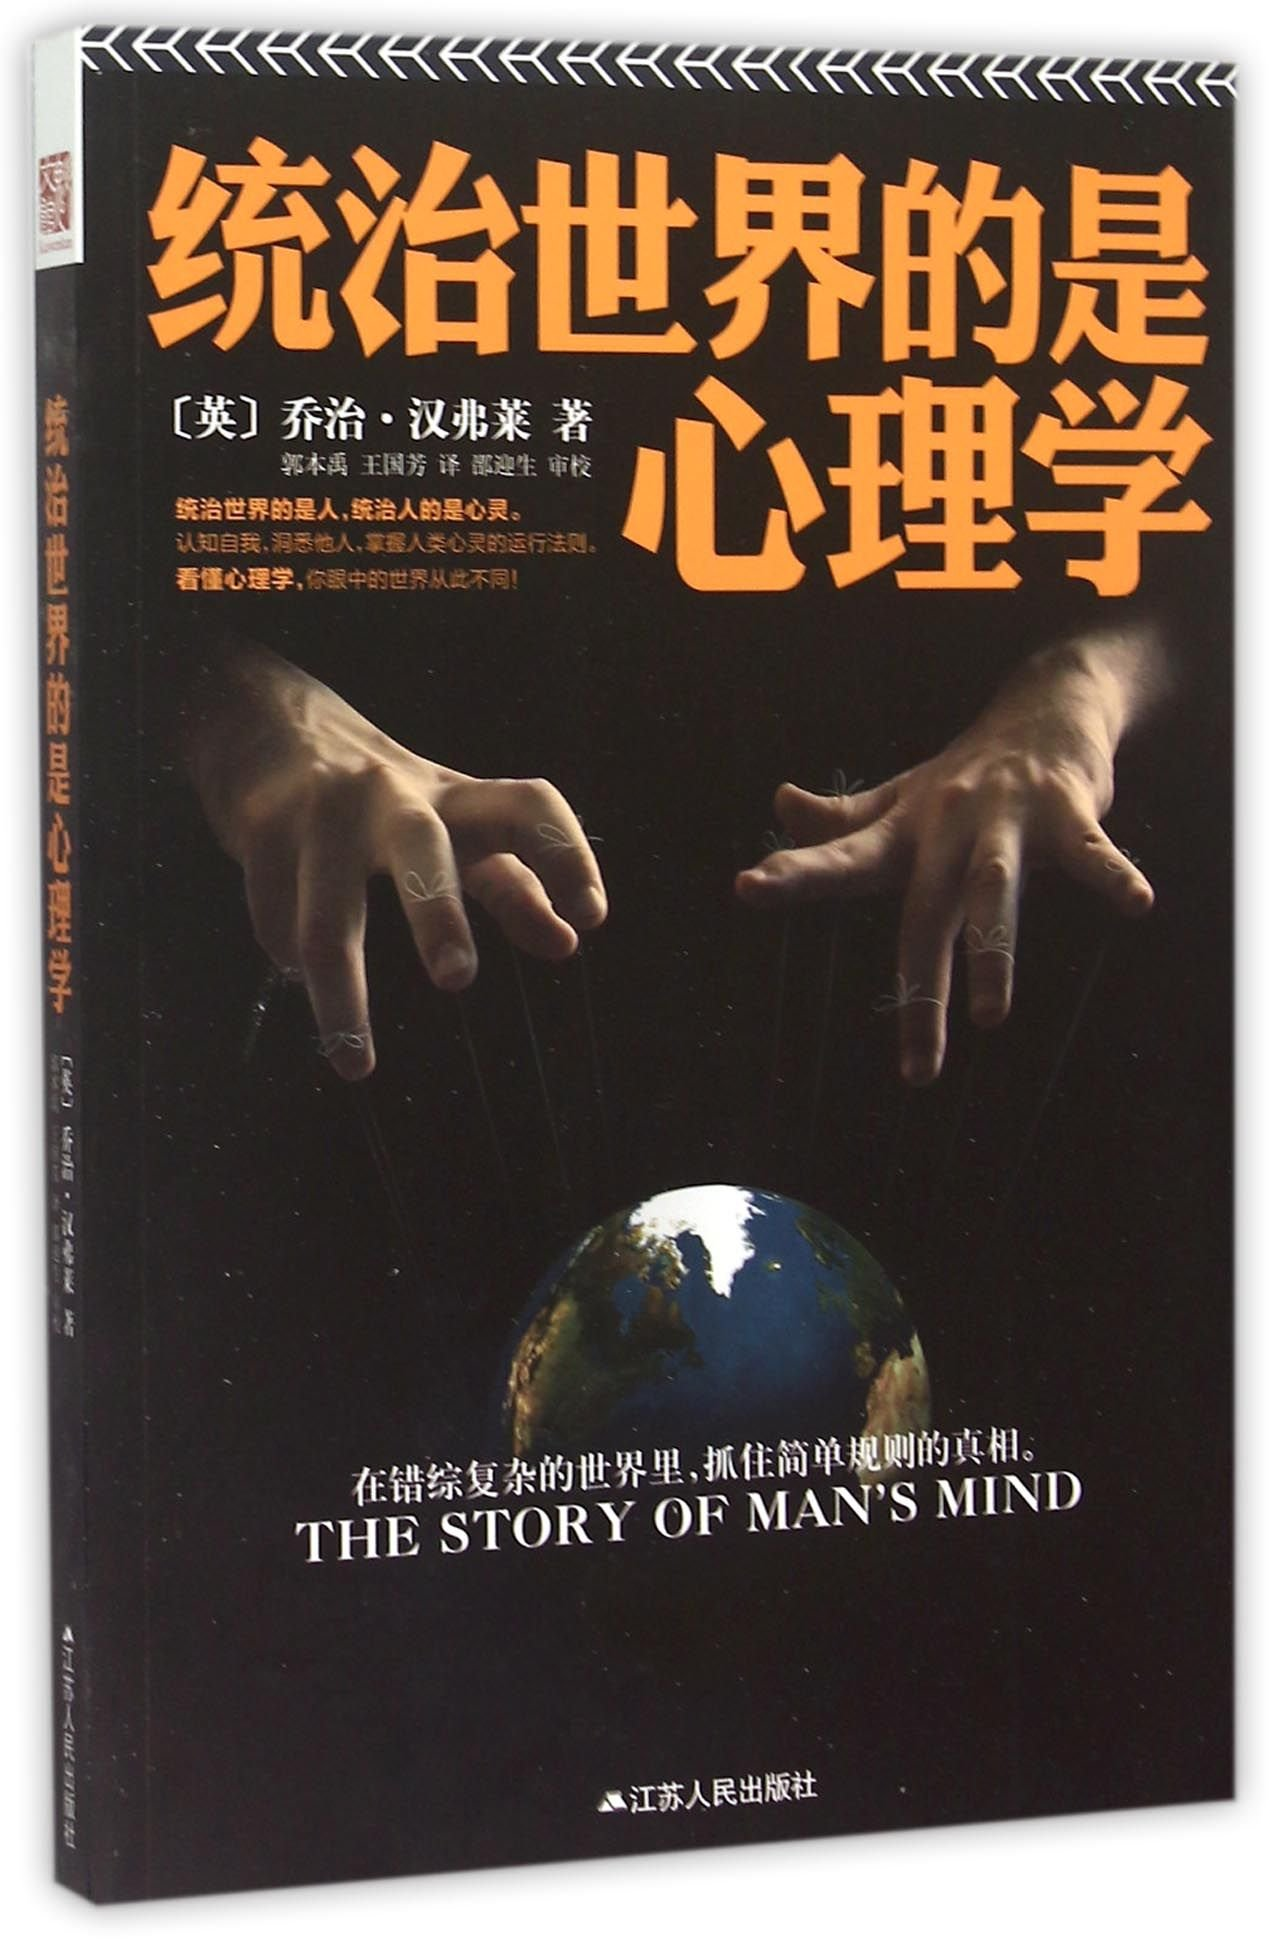 The Story of Man's Mind (Chinese Edition) PDF